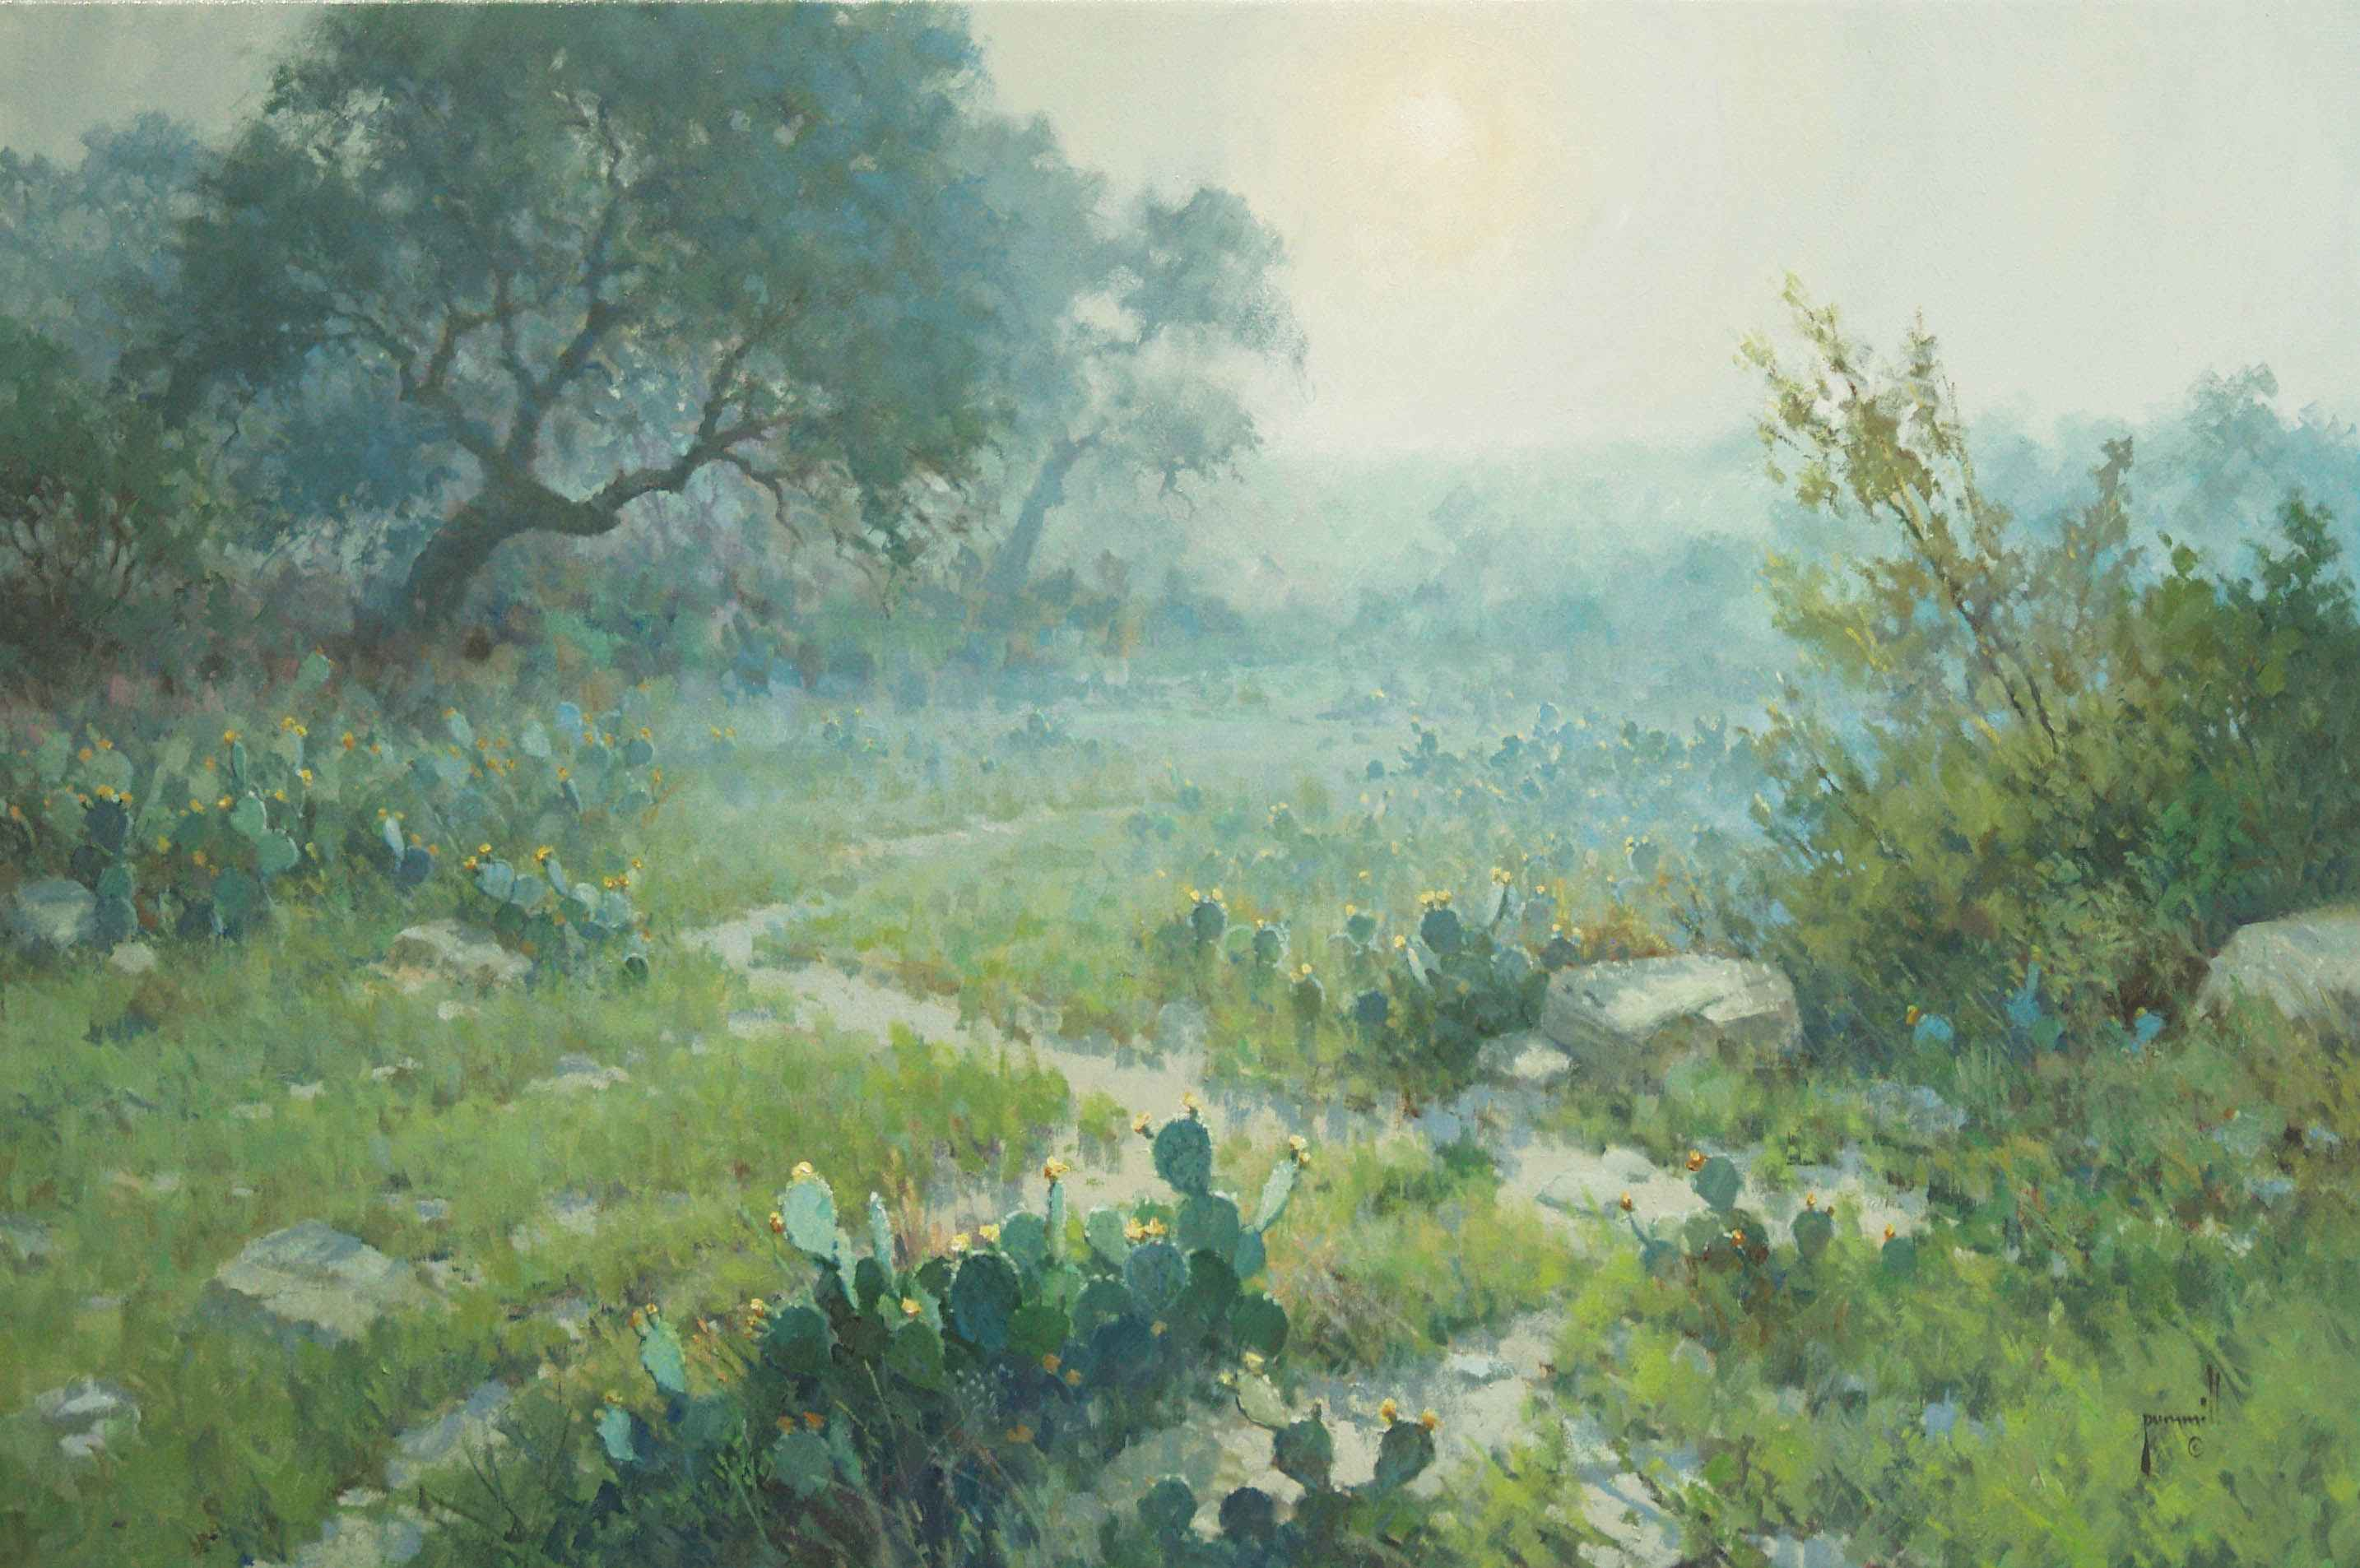 A Misty May Morning by Mr. & Mrs. Robert Pummill - Masterpiece Online